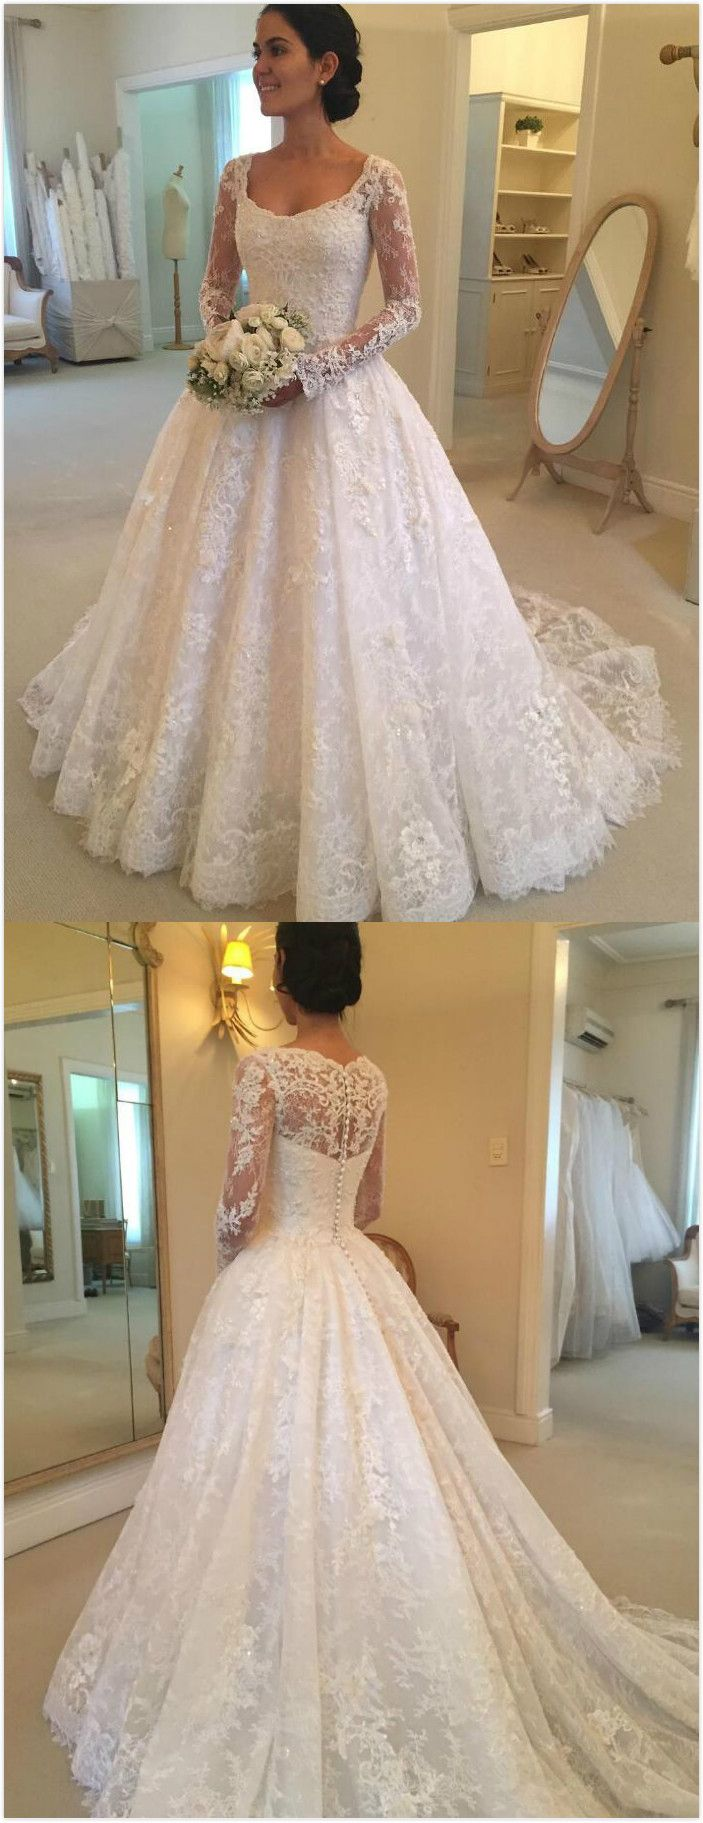 Mermaid wedding dresses with lace  lace wedding dressesMermaid Wedding Dresslong sleeves wedding